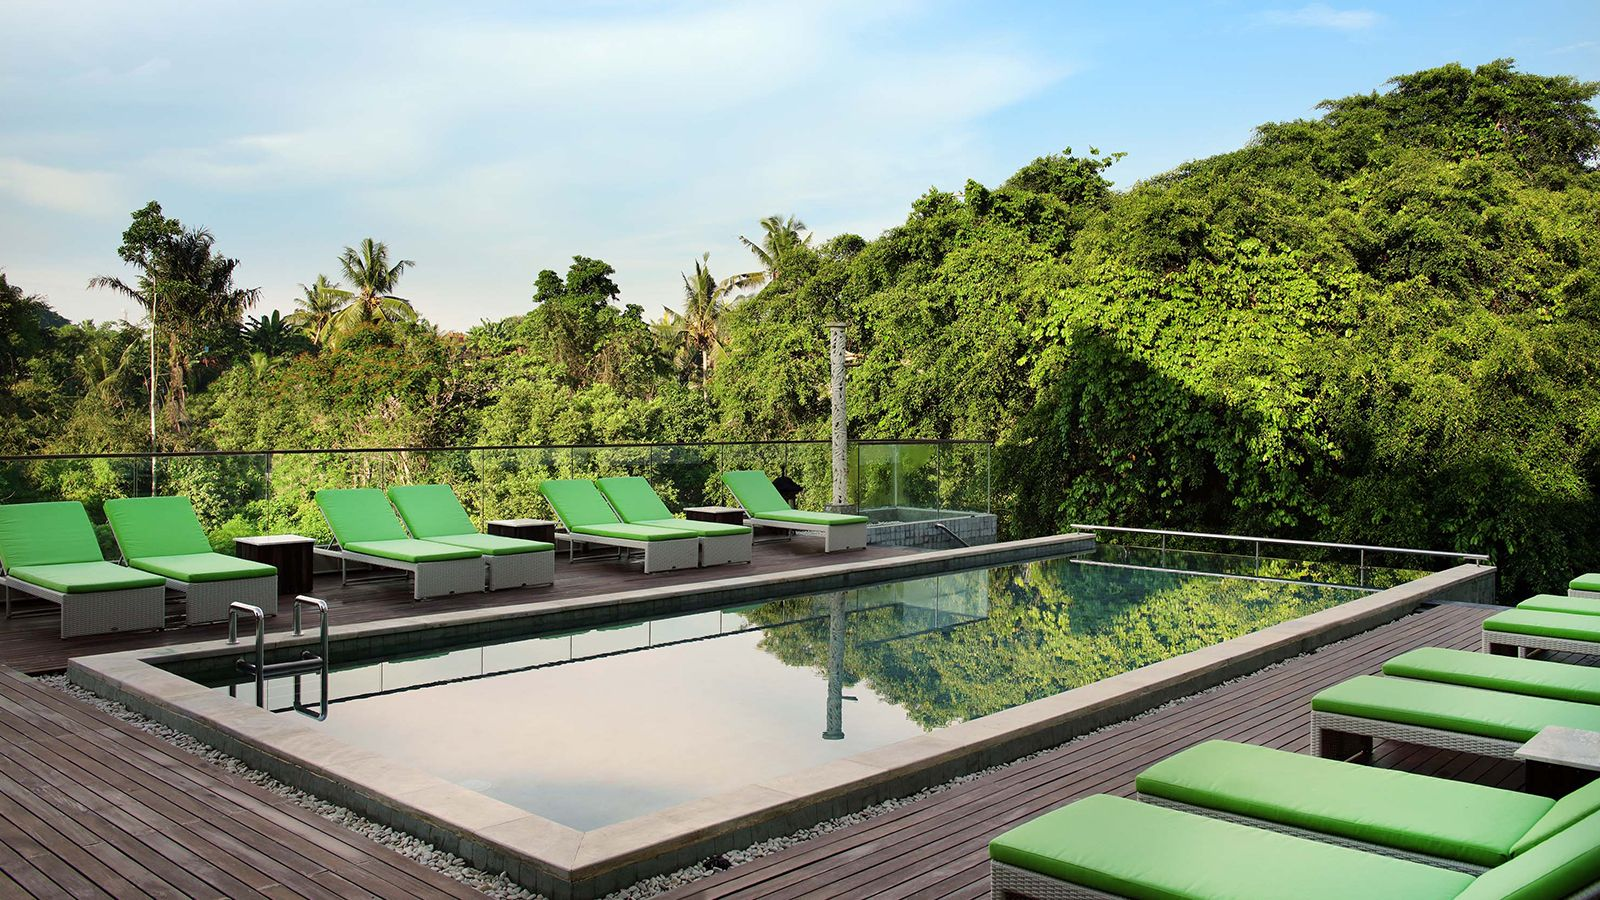 SPG Hot Escapes Sthala Ubud